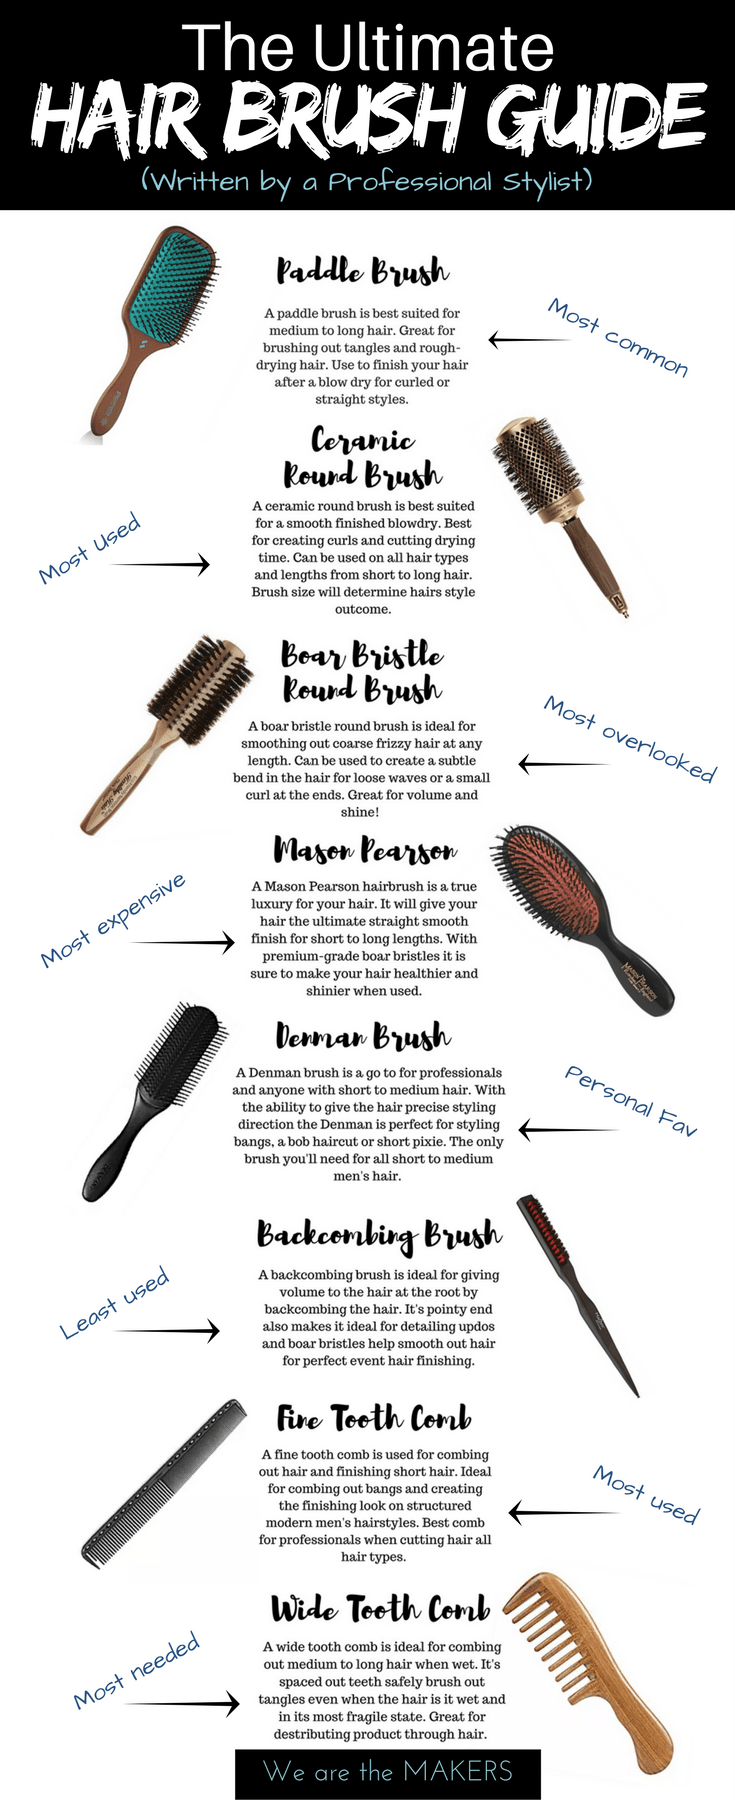 The Ultimate Hair Brush Guide Hair Brush Guide Best Hair Brush Brush Guide